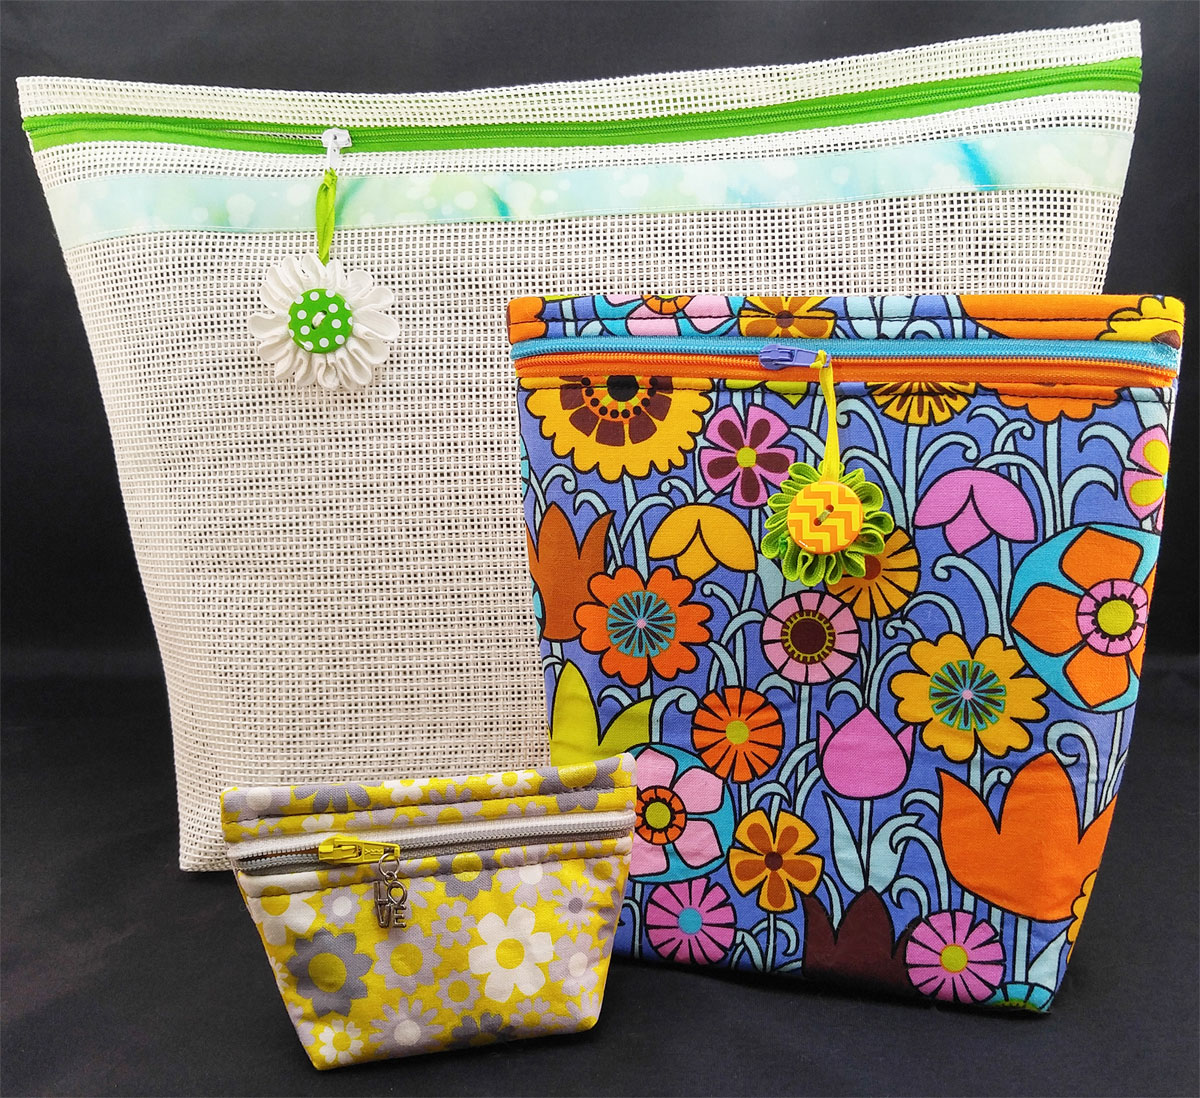 StandZa-Zip-Bag-sewing-pattern-Sew-TracyLee-Designs-1